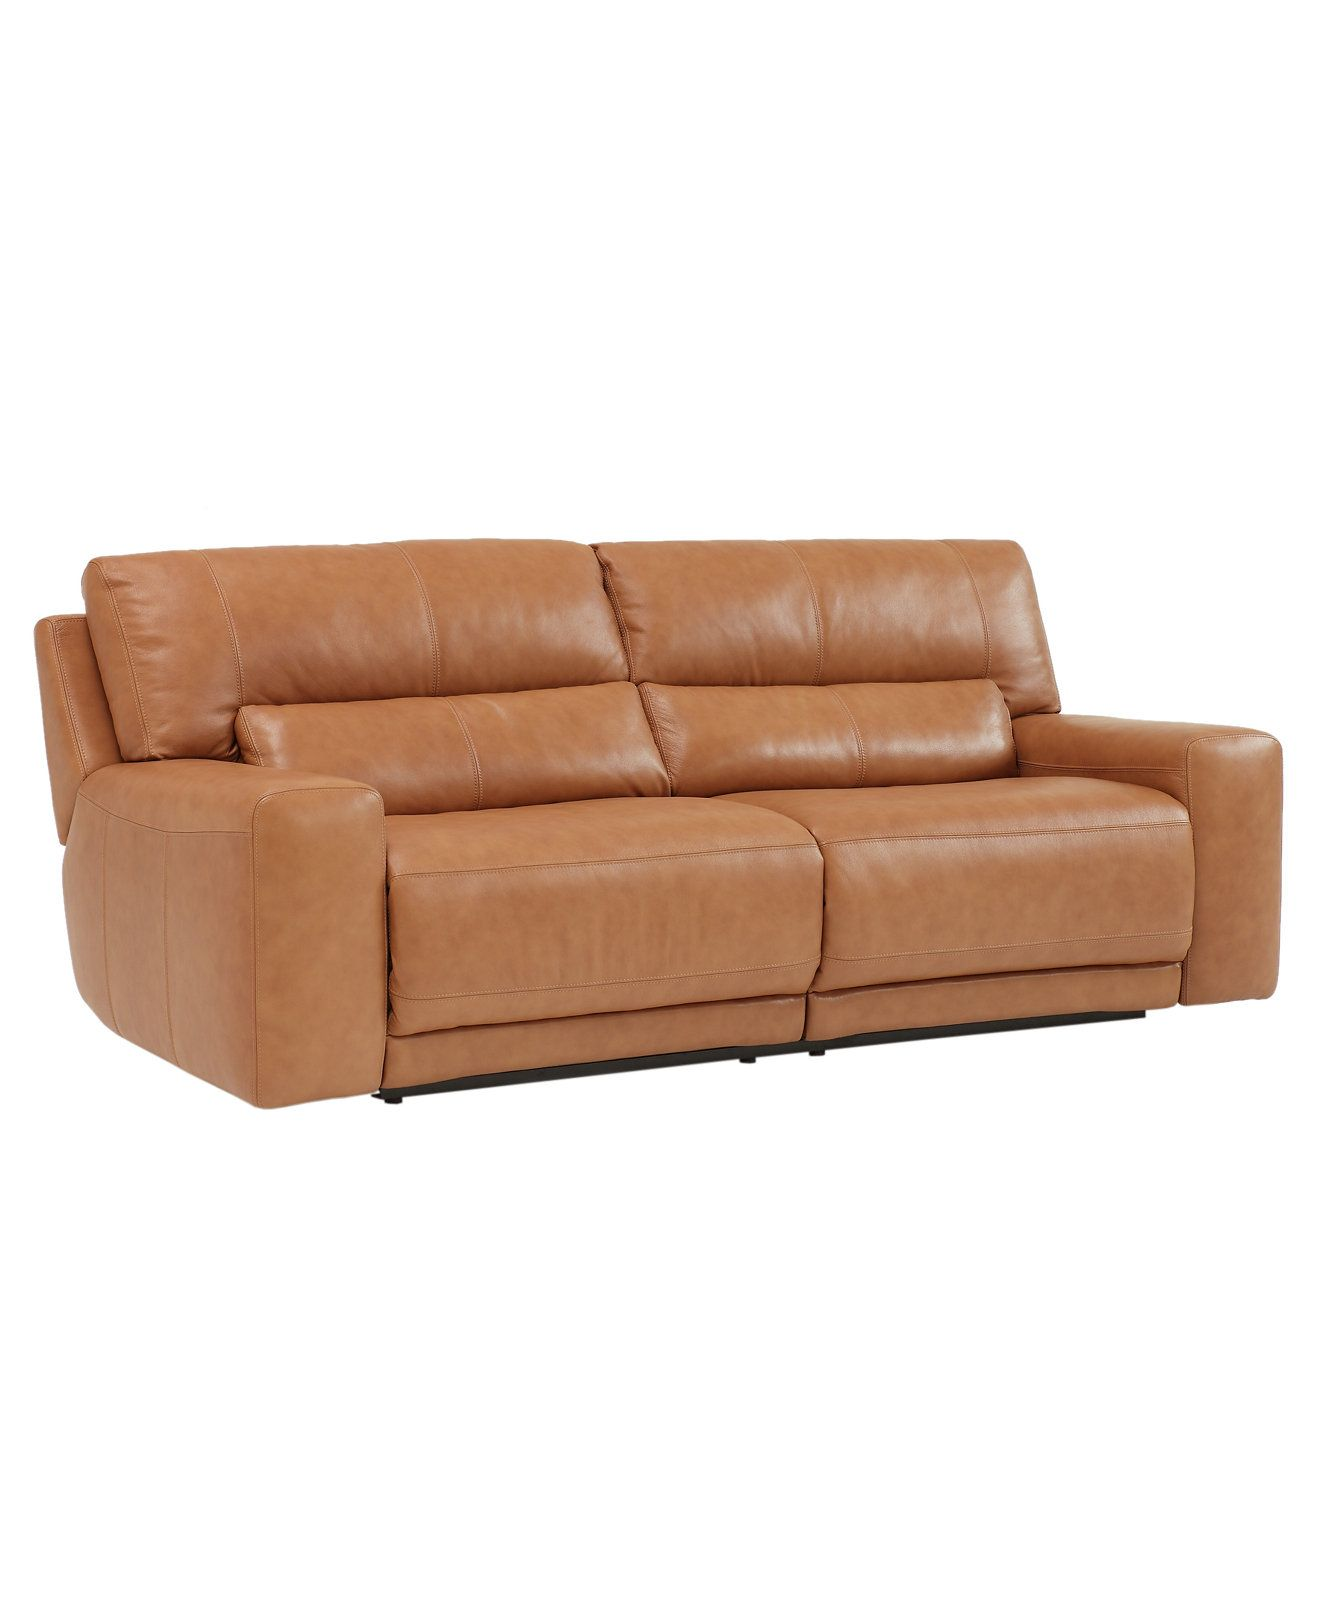 Paolo Sofa Double Reclining Couches & Sofas Furniture Macy s